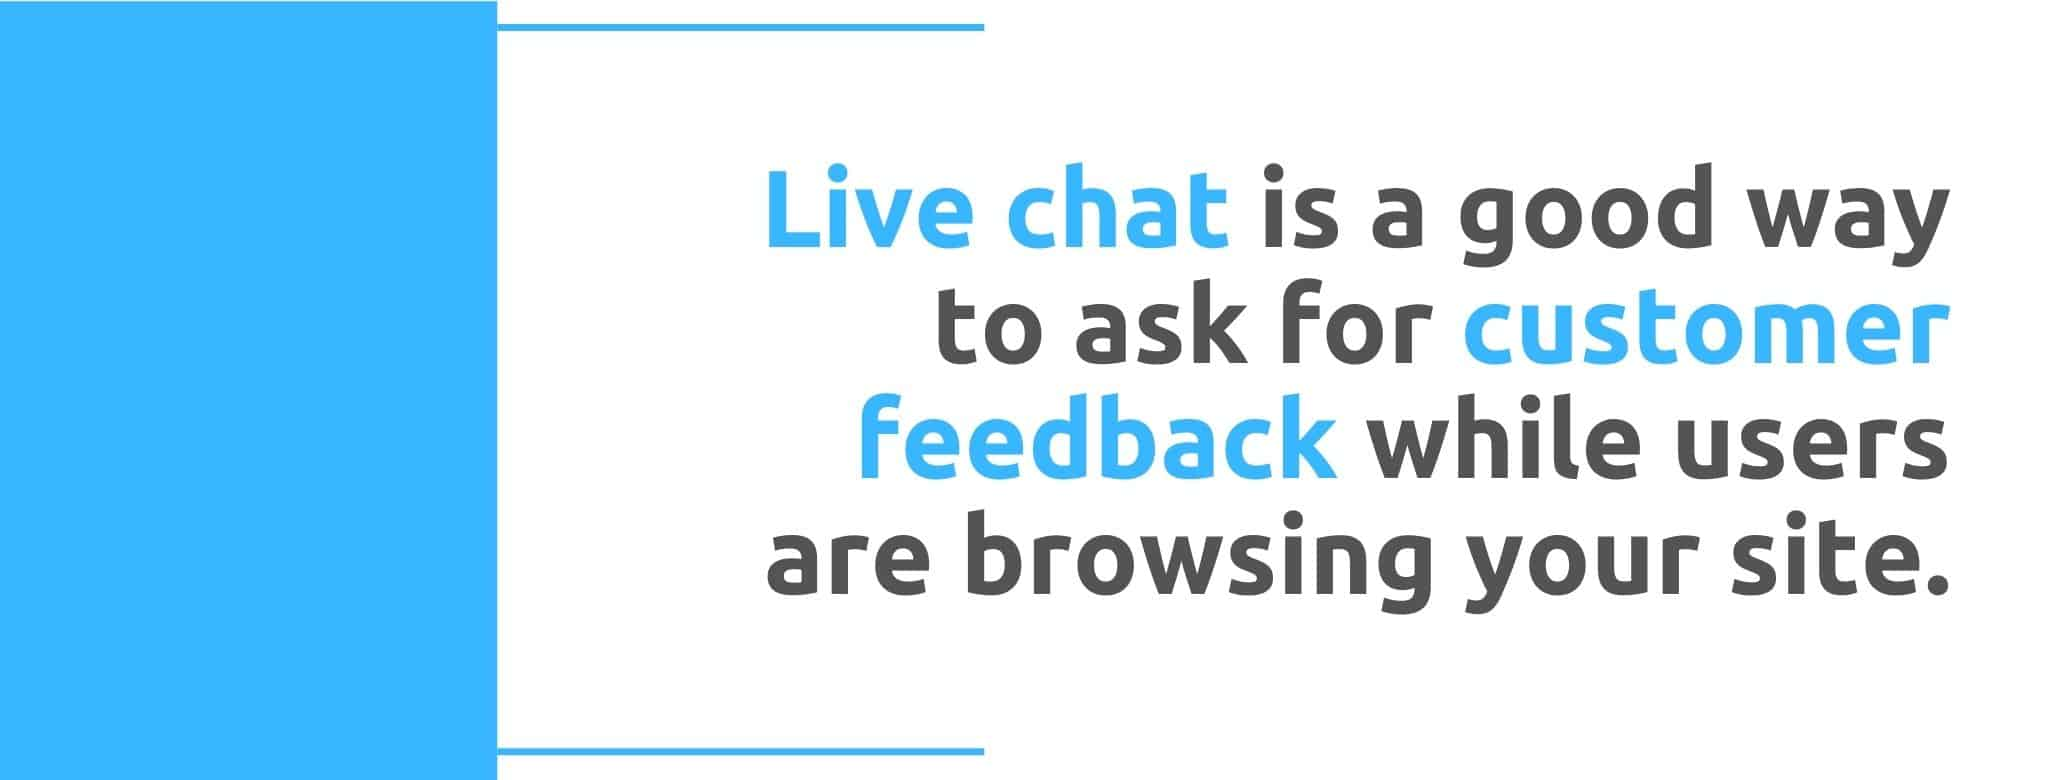 Live chat is a good way to ask for customer feedback while users are browsing your site - 22 Ways to Collect Customer Feedback - Replyco